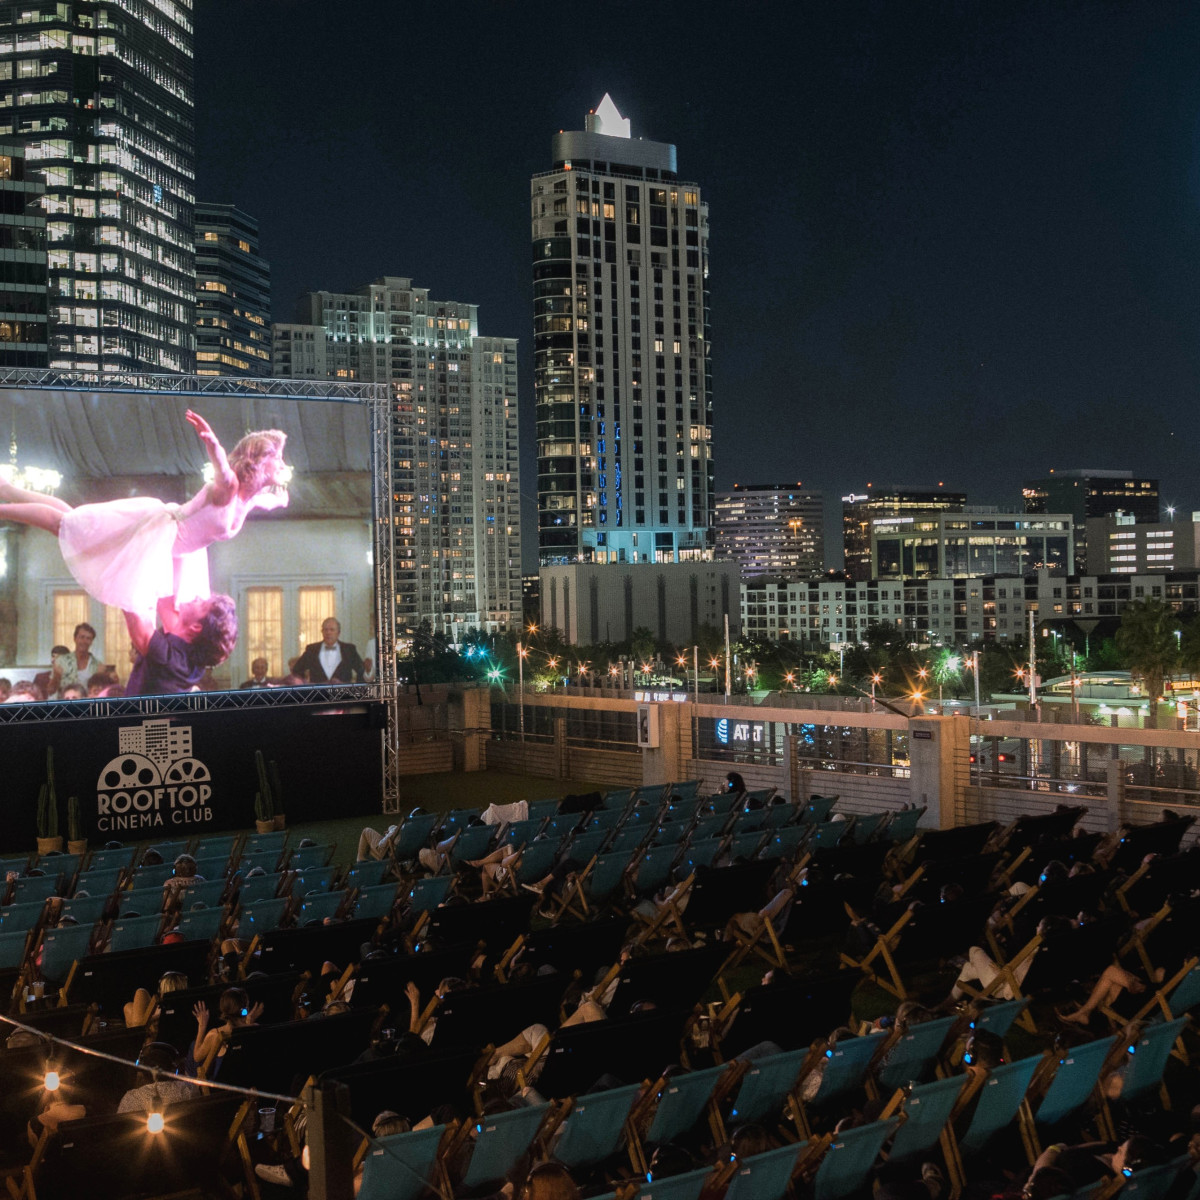 Rooftop Cinema Club Houston night skyline